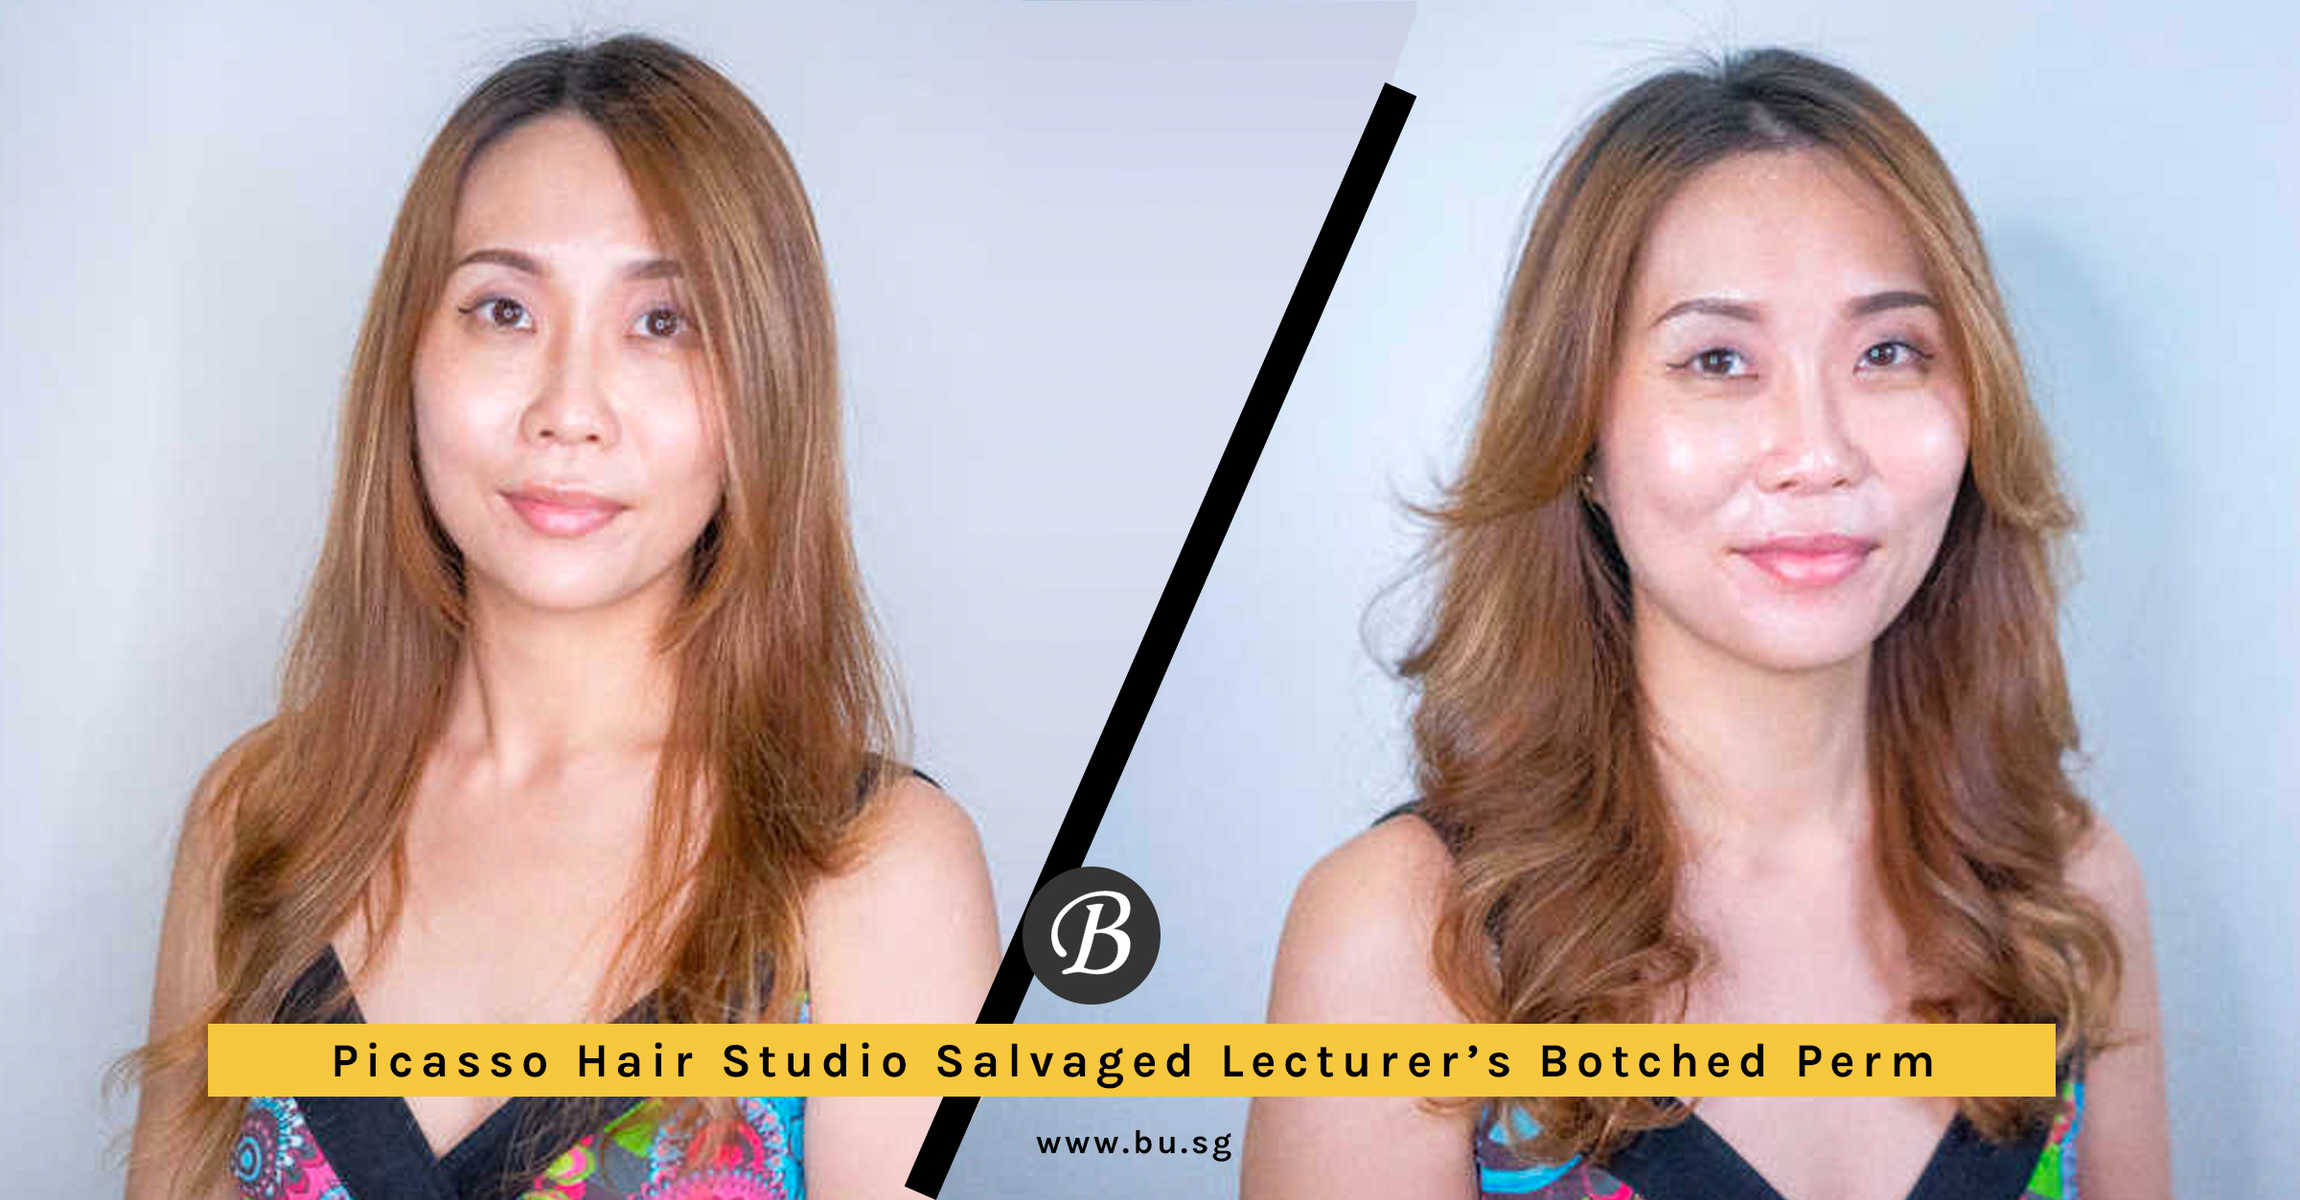 Picasso Hair Studio Fixed University Lecturer Y's Botched Perm with the Newest Paimore GRATS